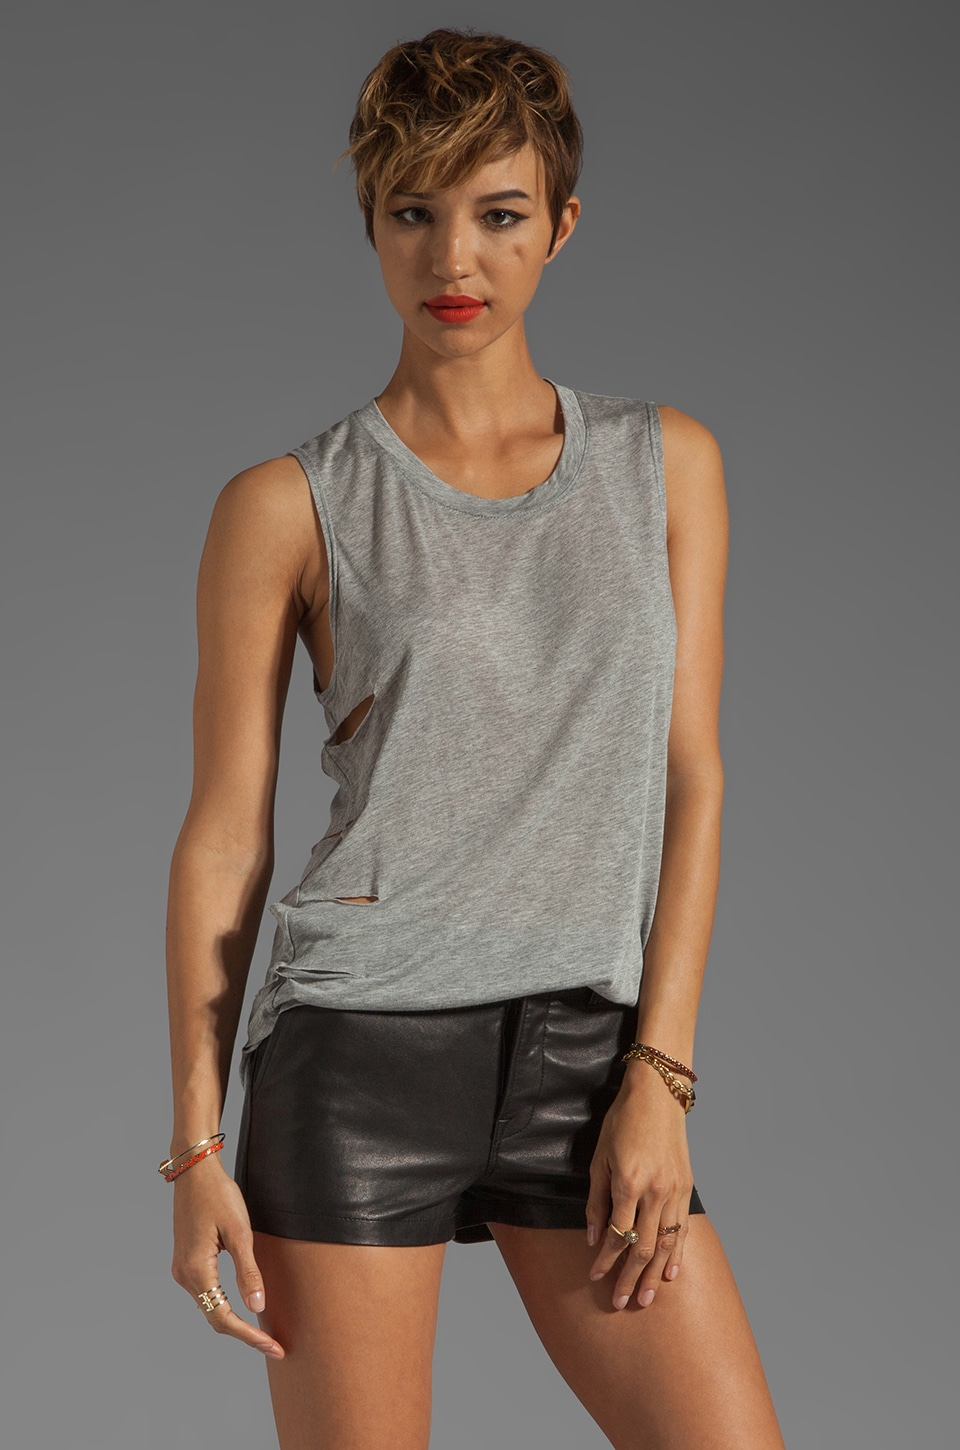 Daftbird Sleeveless Cut-Out Sides Tee in Heather Grey